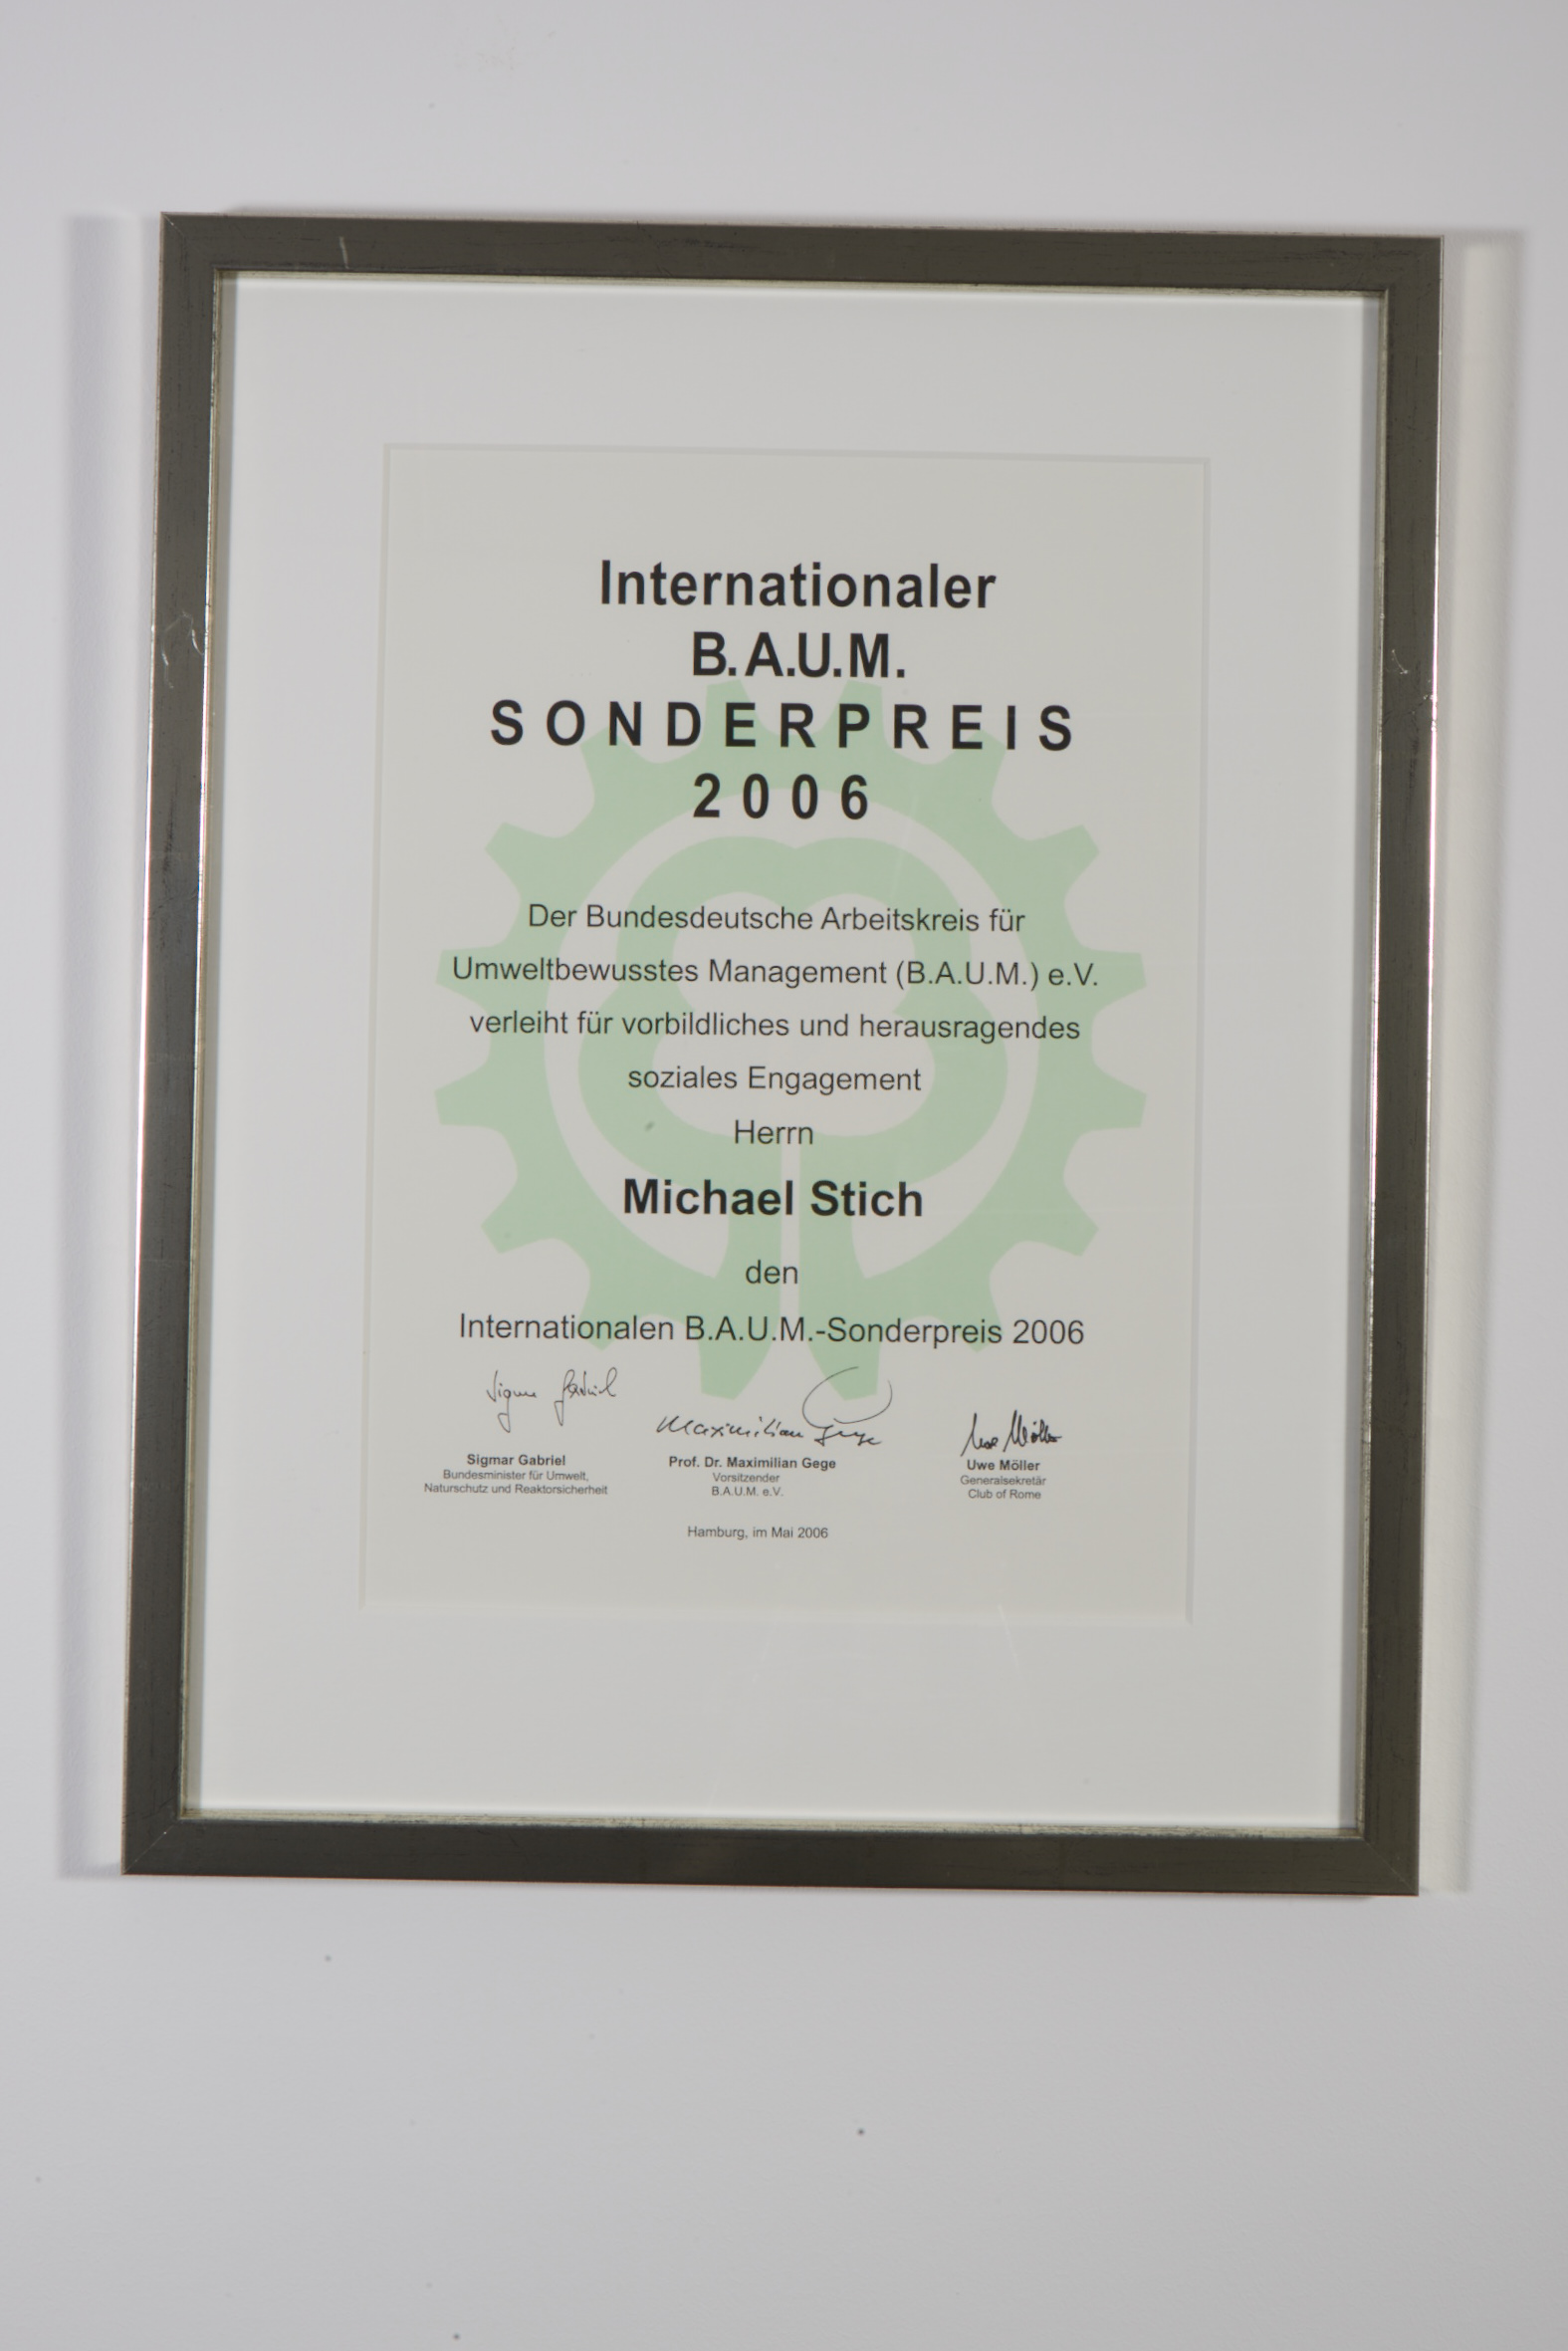 Internationaler B.A.U.M. Sonderpreis, 2006